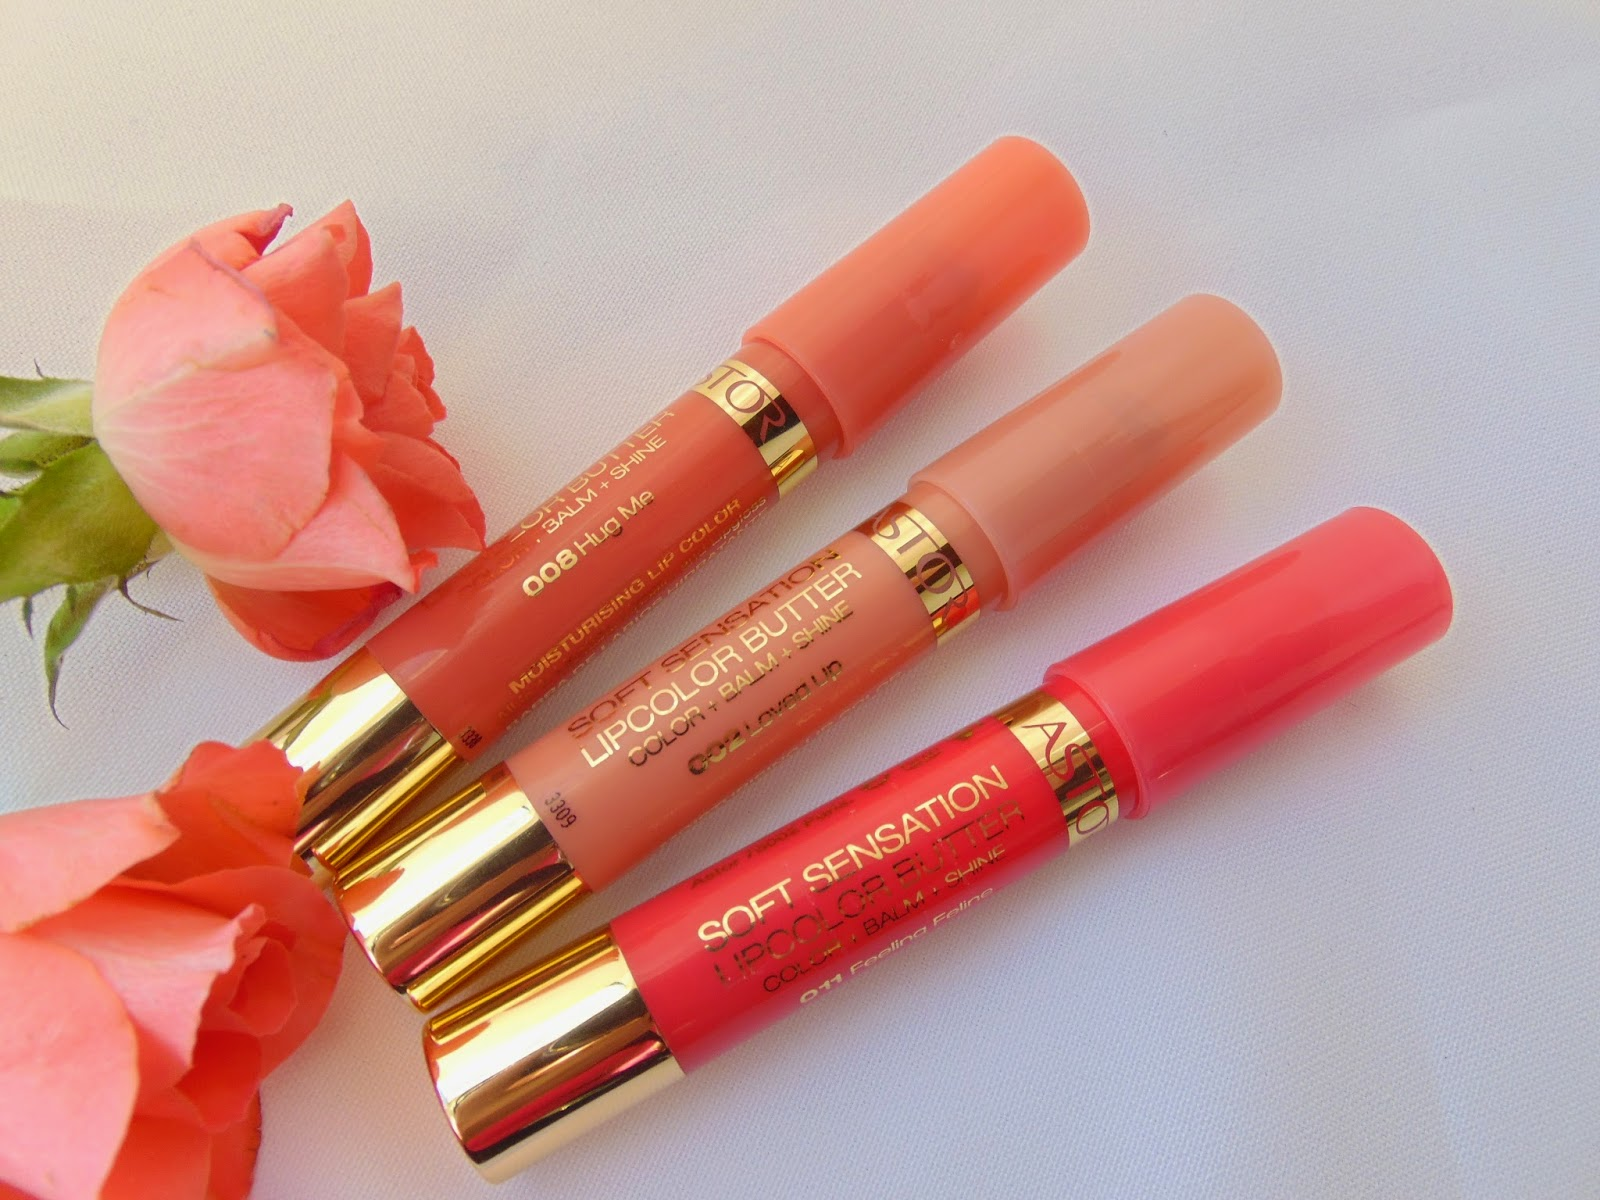 Astor Lip Butter - Hug me - Loved up - Feeling Feline - www.annitschkasblog.de